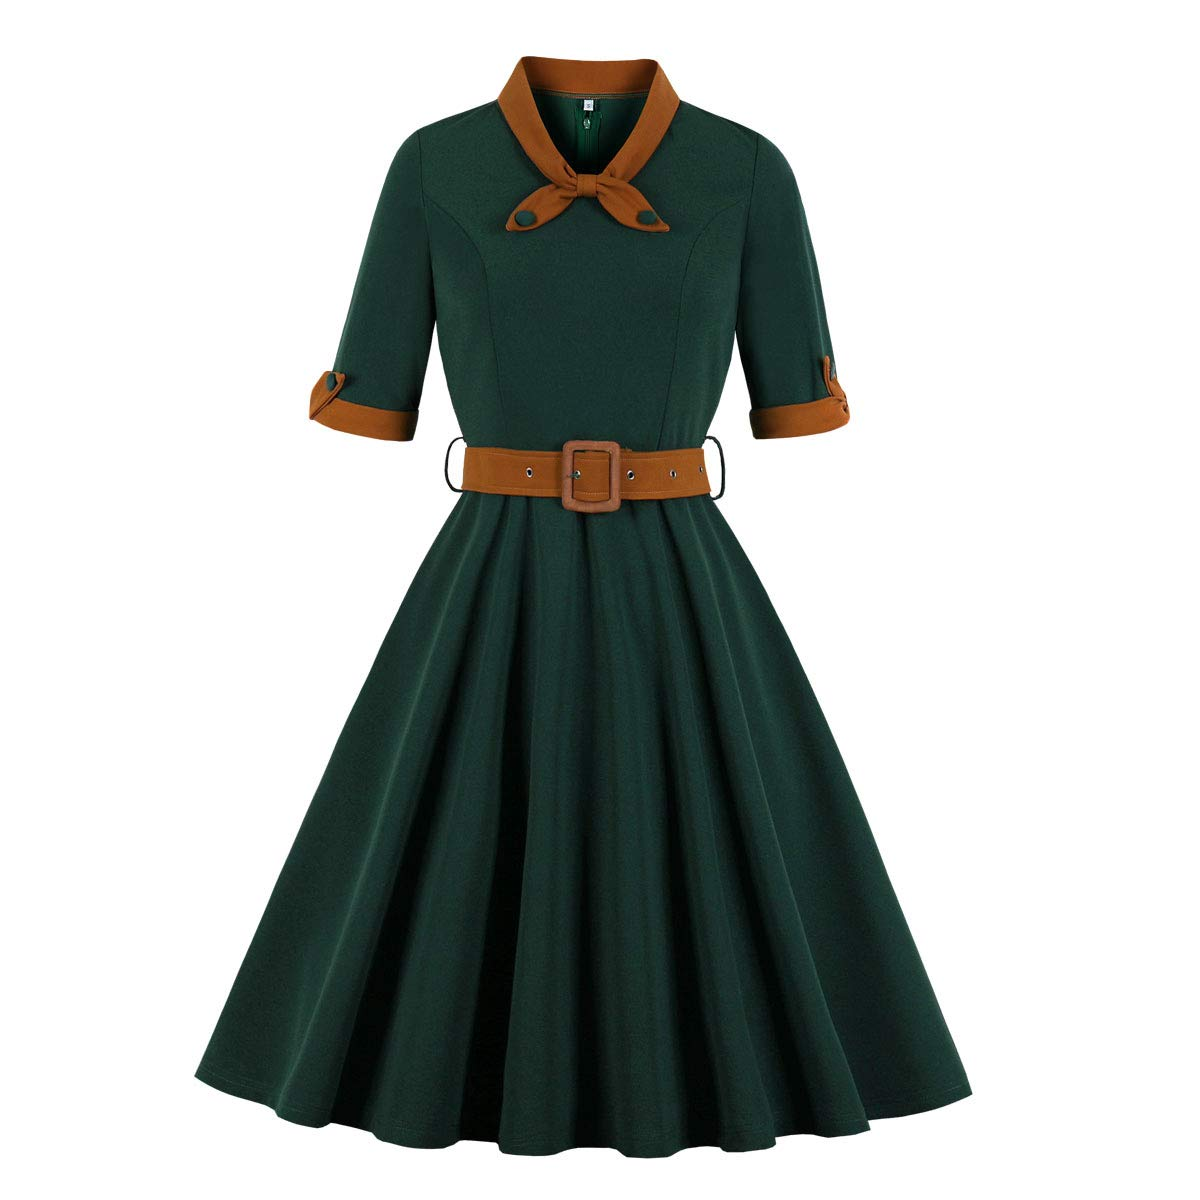 500 Vintage Style Dresses for Sale | Vintage Inspired Dresses Wellwits Womens 1/2 Half Sleeves Sailor Tie Neck 1940s Retro Vintage Dress $24.98 AT vintagedancer.com